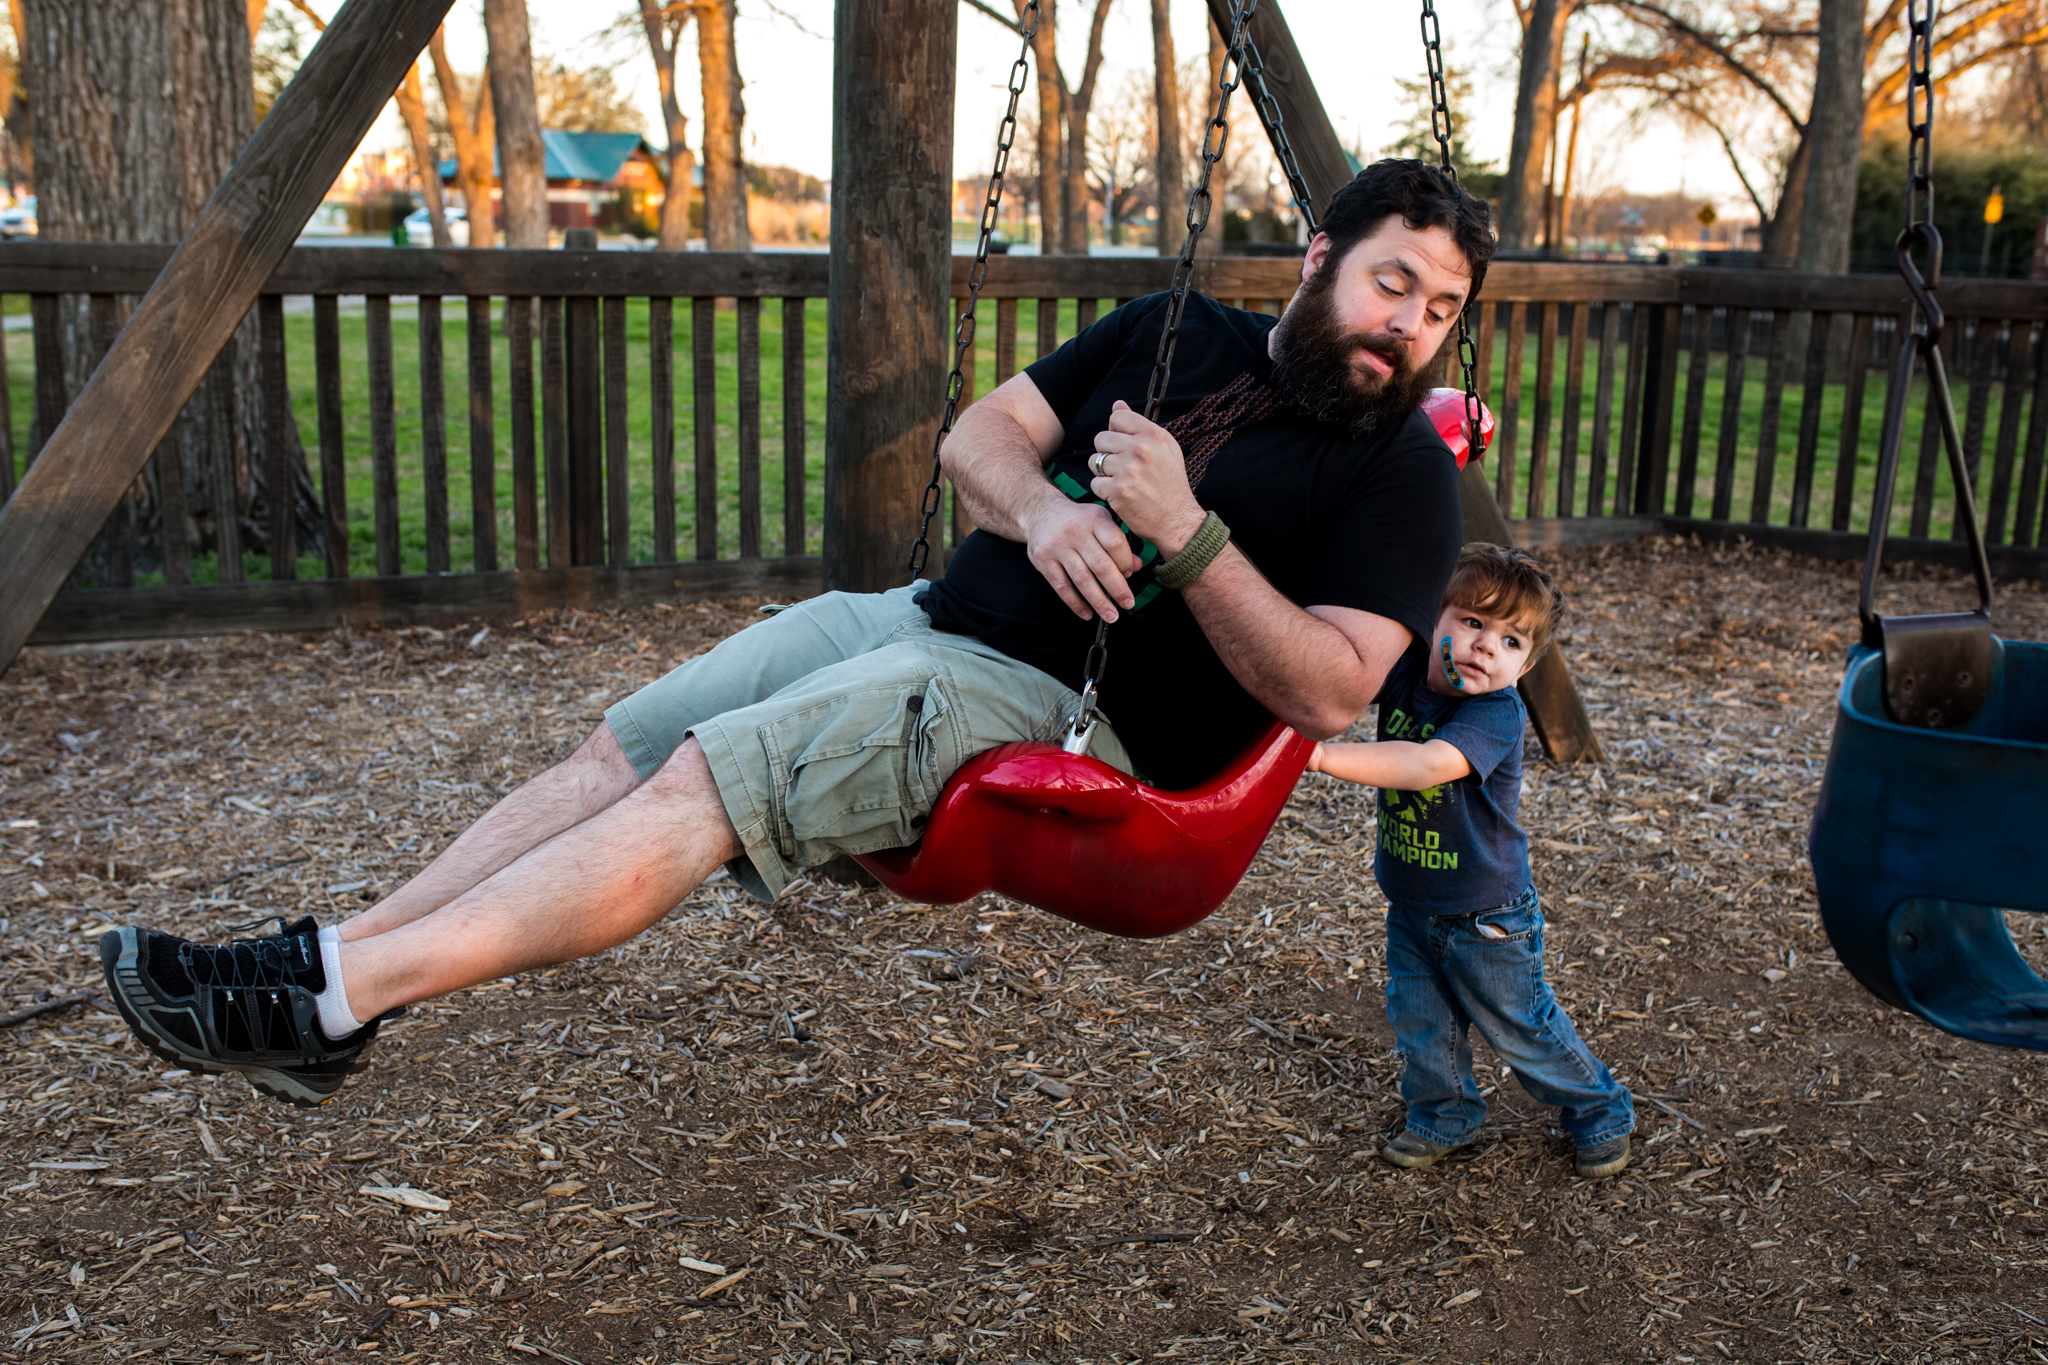 3 year old son pushing his dad on a swing set